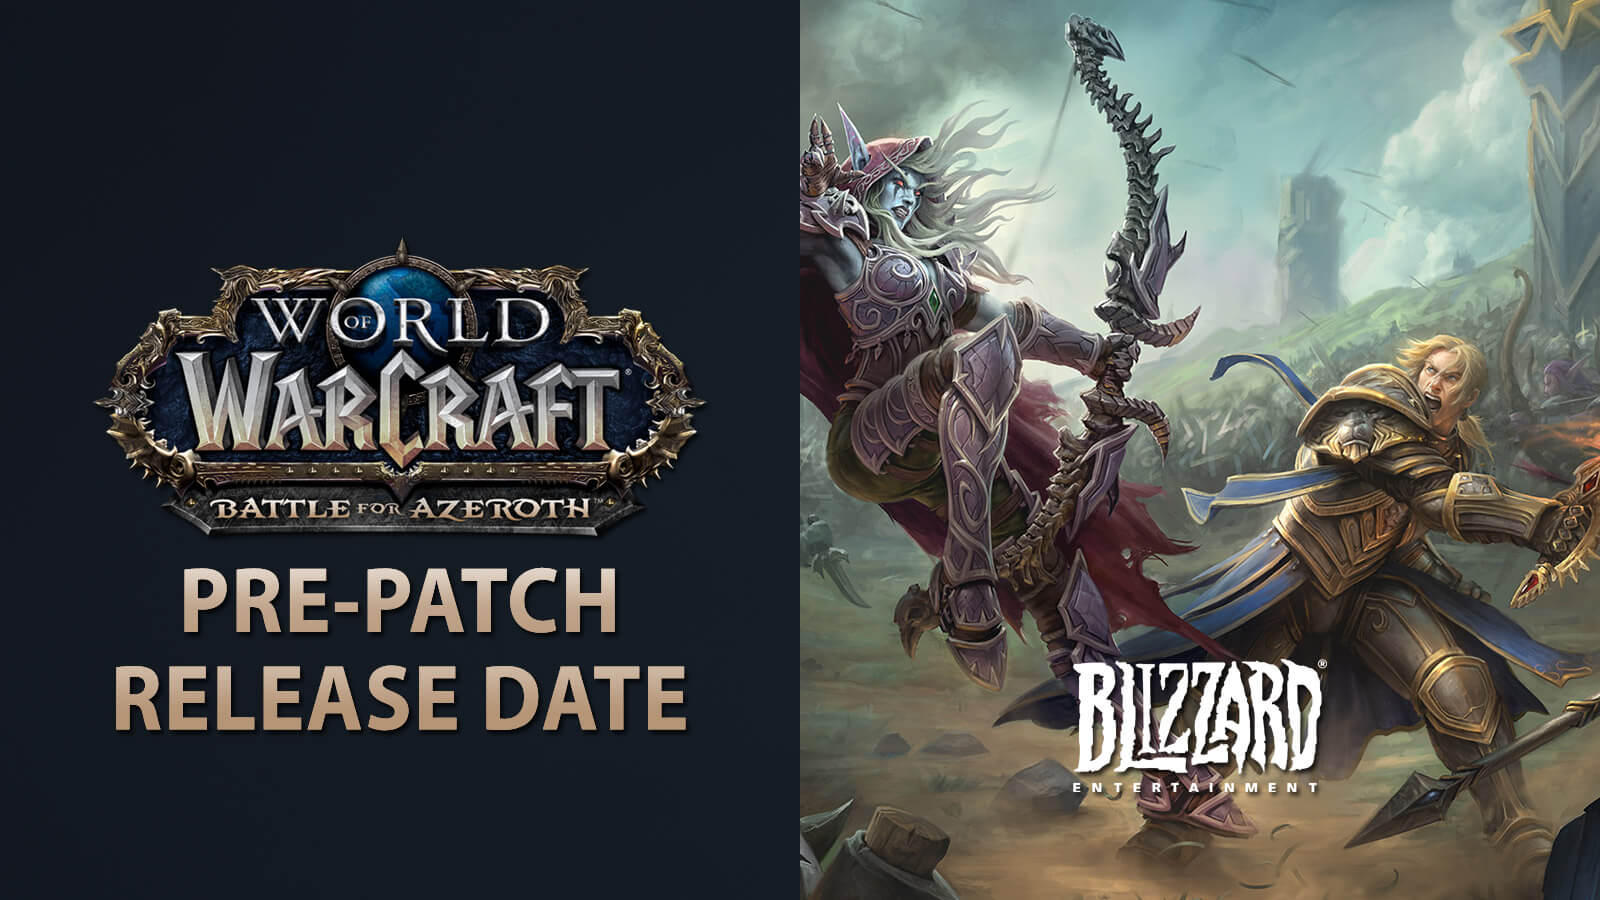 battle for azeroth pre patch